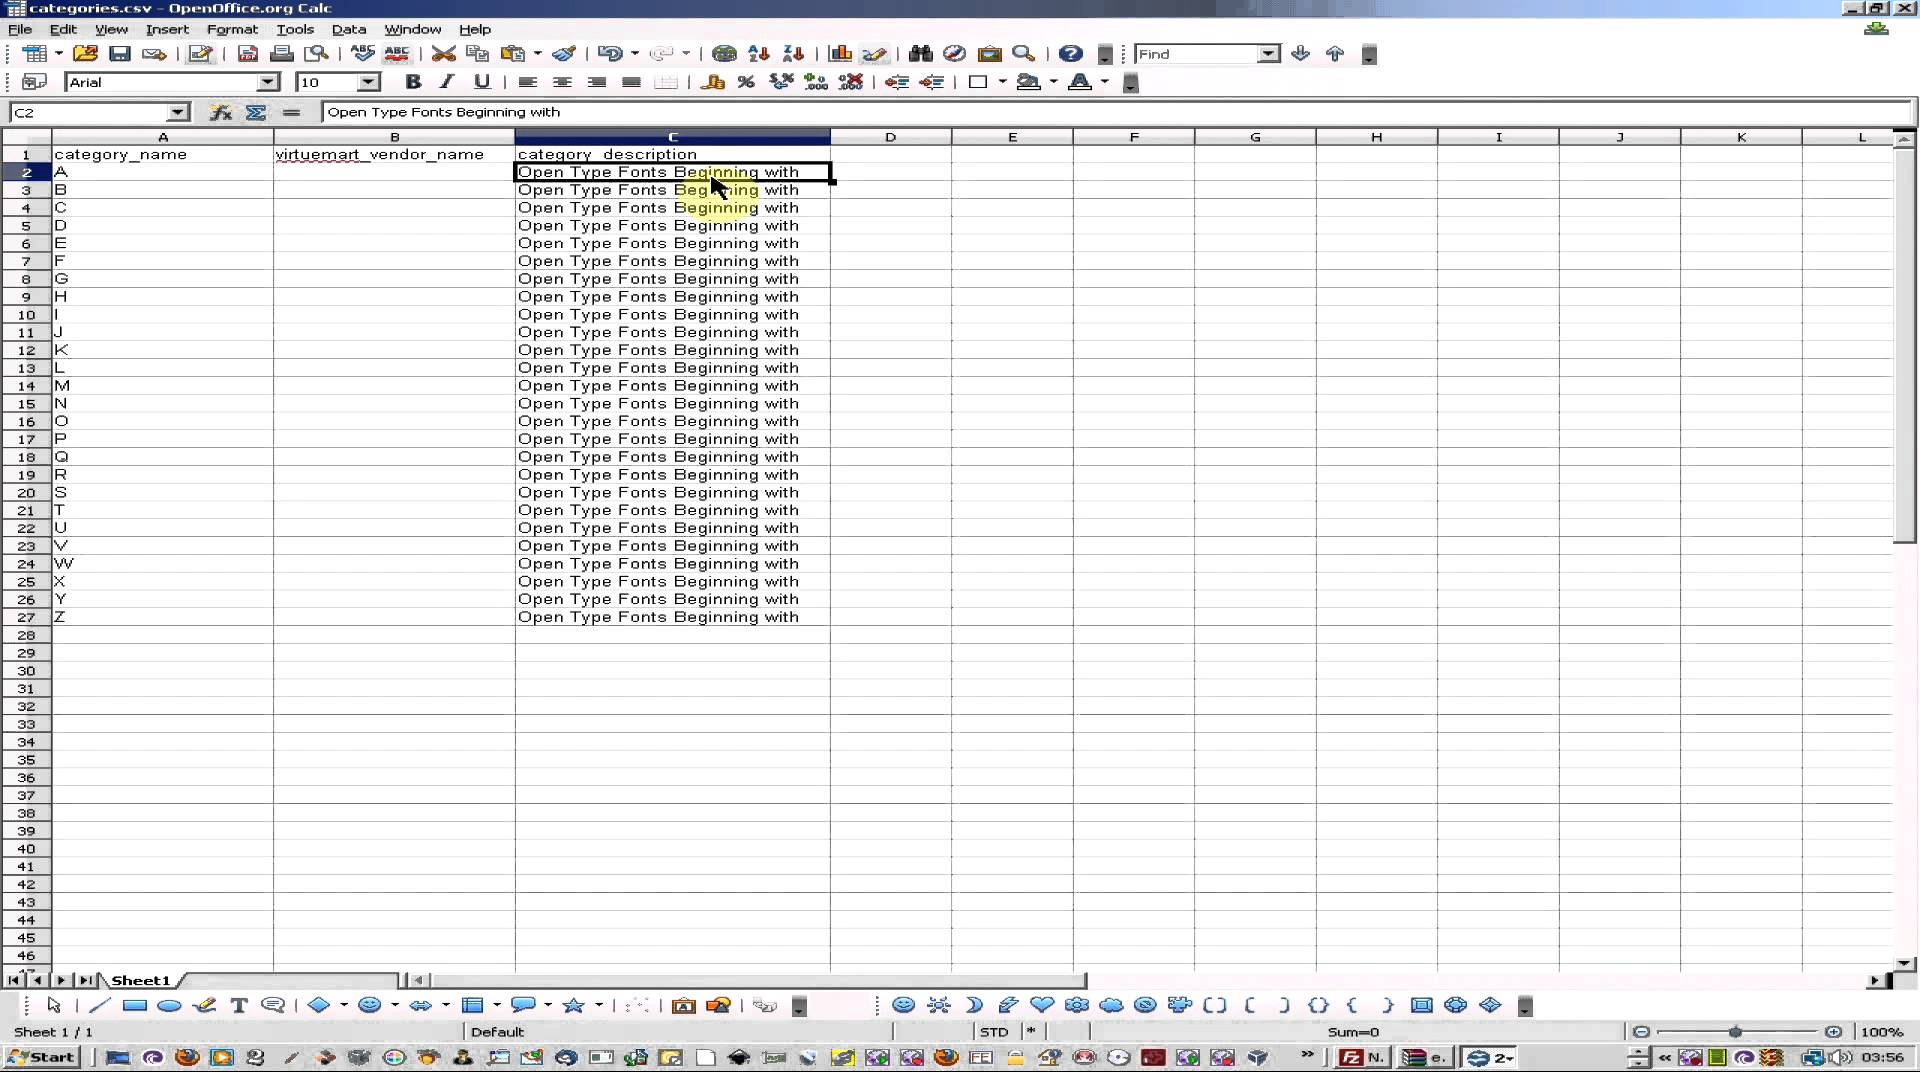 Consolidate Worksheet Wizard For Microsoft Excel